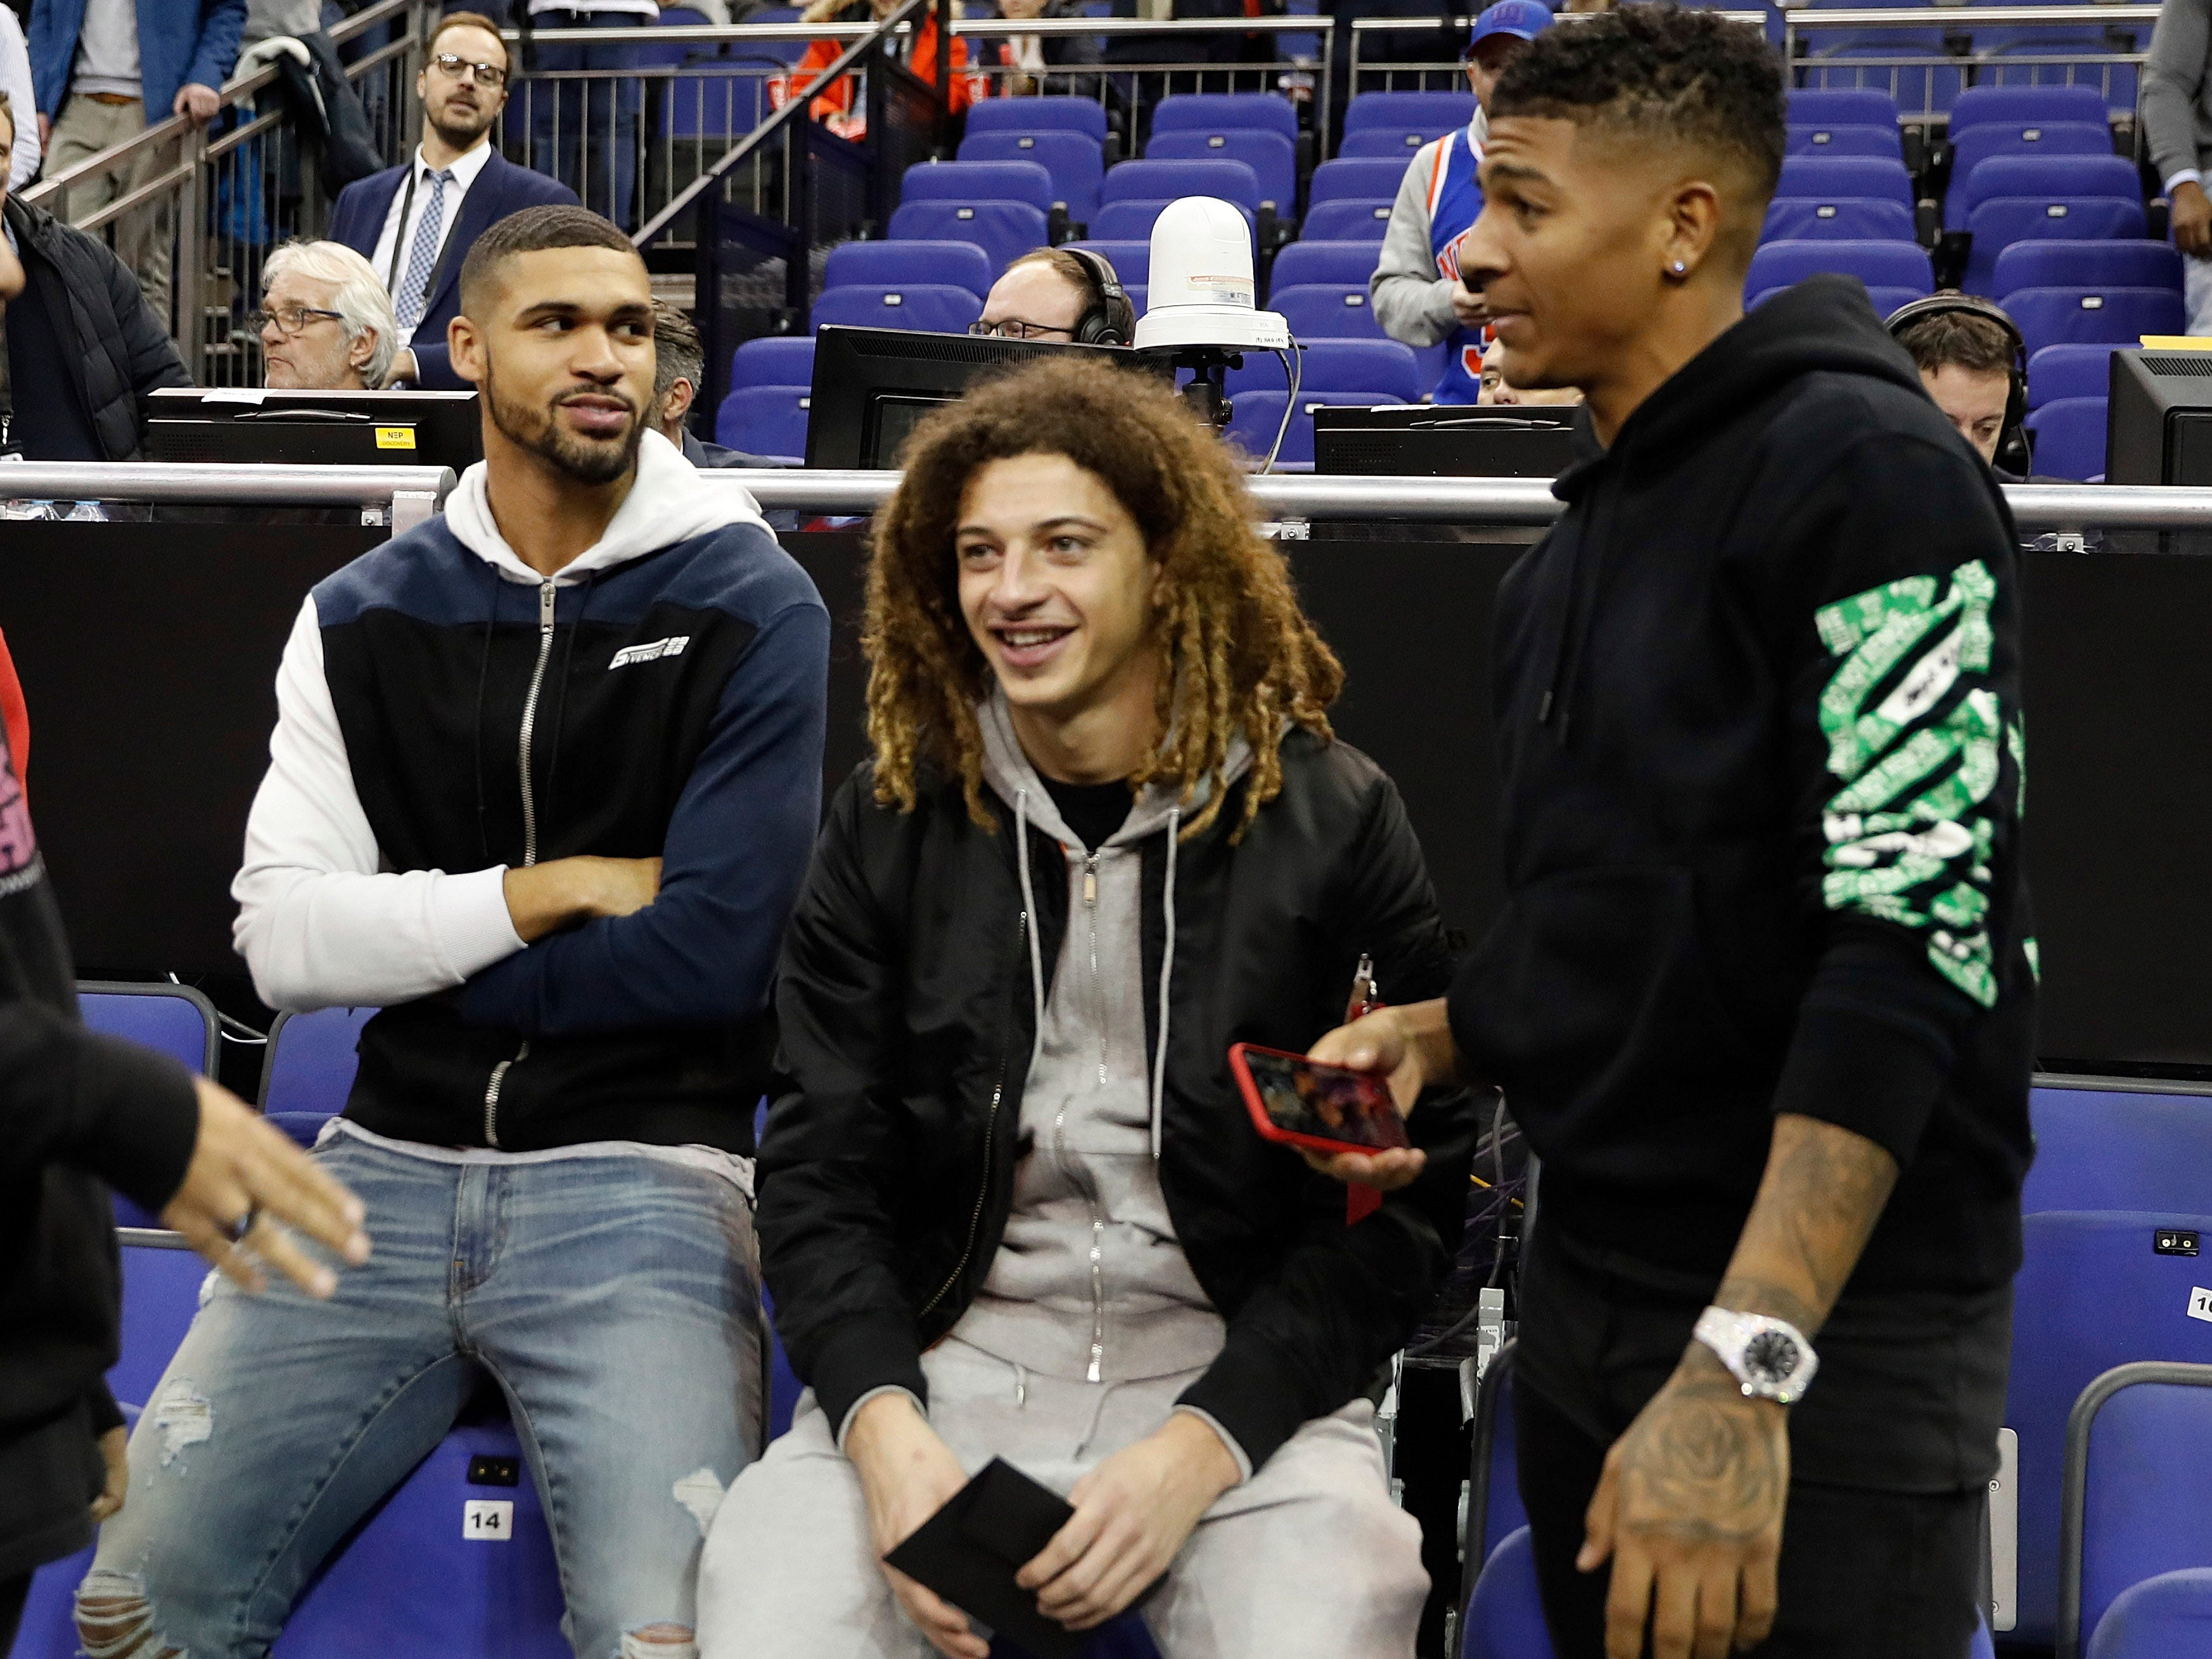 Chelsea's Ruben Loftus-Cheek, left, is flanked by Chelsea's Ethan Ampadu, center and Cristal Palace's Patrick van Aanholt attend an NBA basketball game between New York Knicks and Washington Wizards at the O2 Arena, in London, Thursday, Jan.17, 2019.